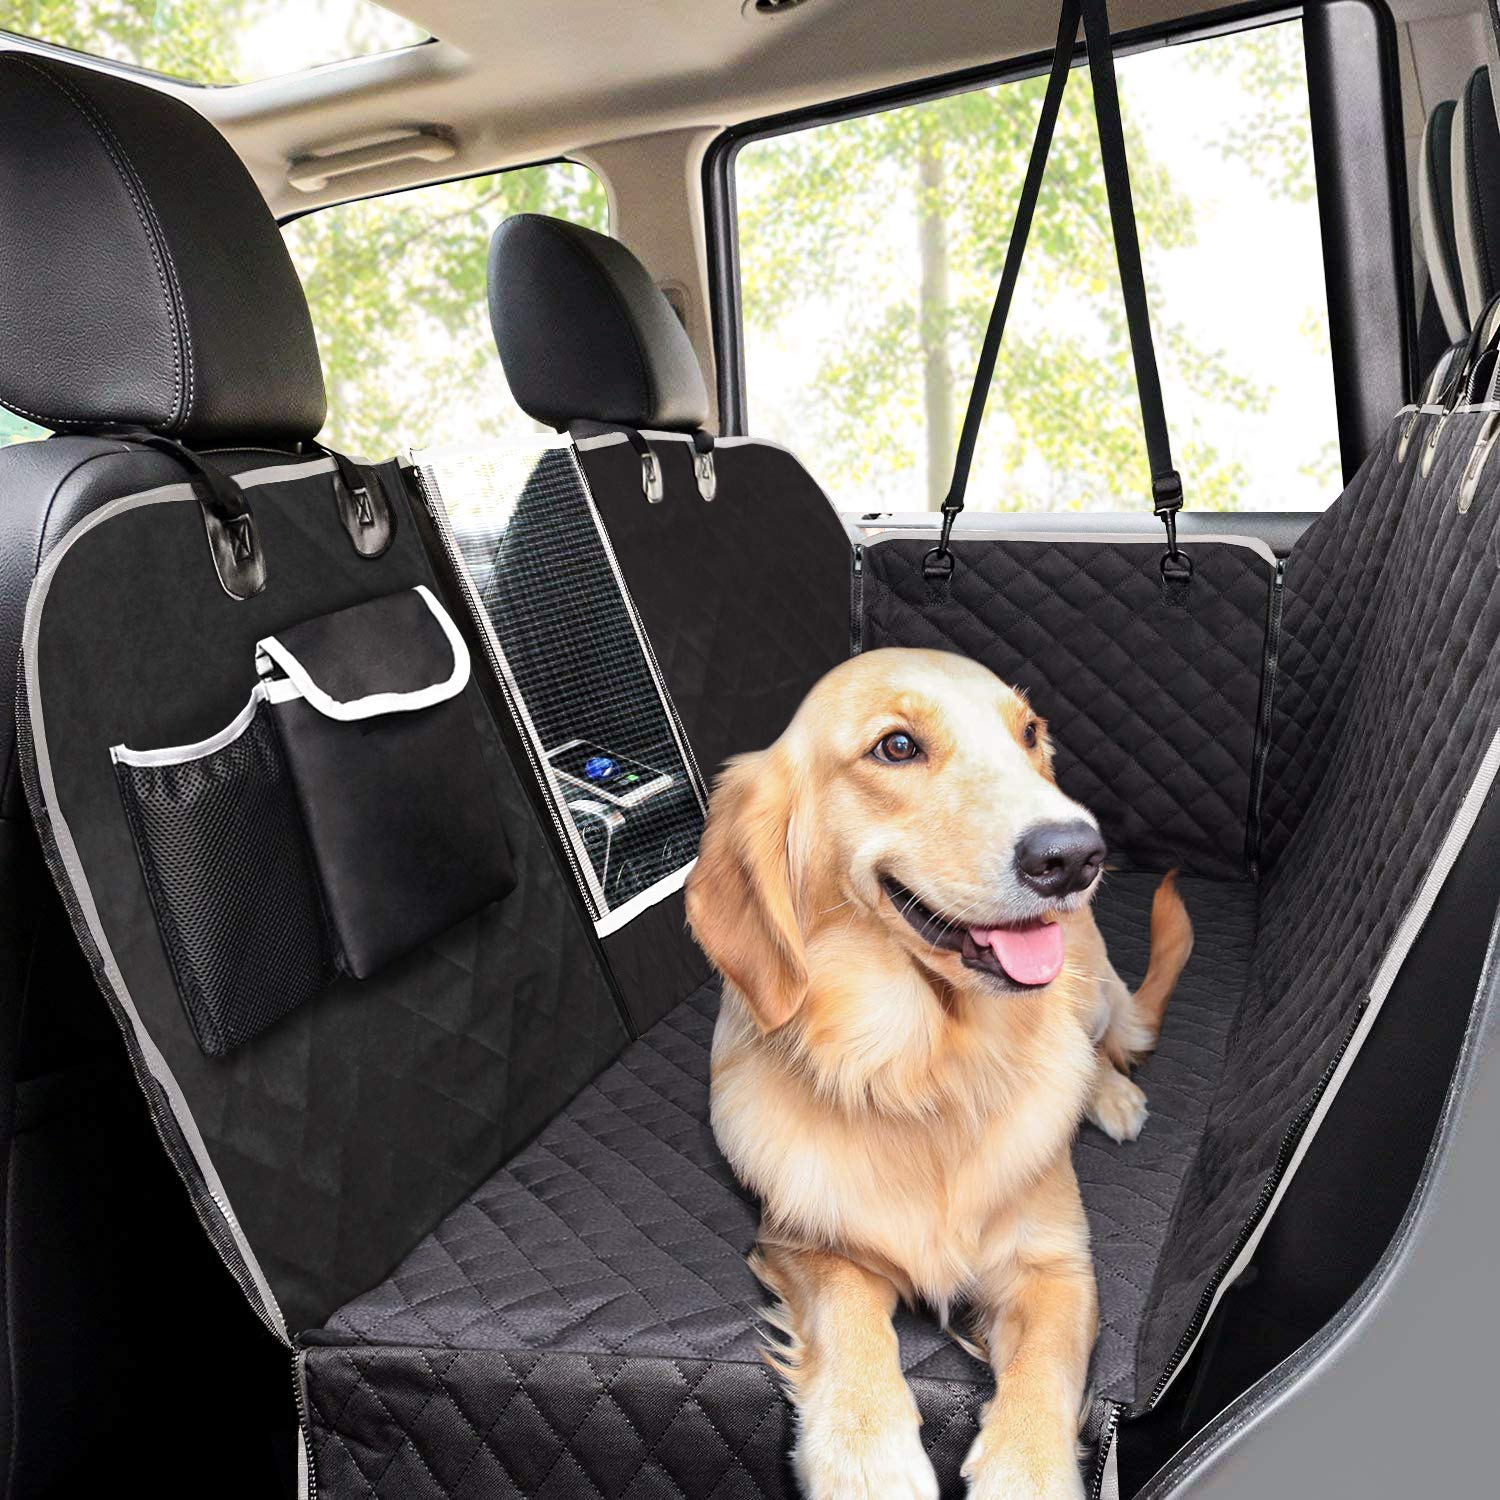 Pecute Seat Cover for Universal Rear Dogs